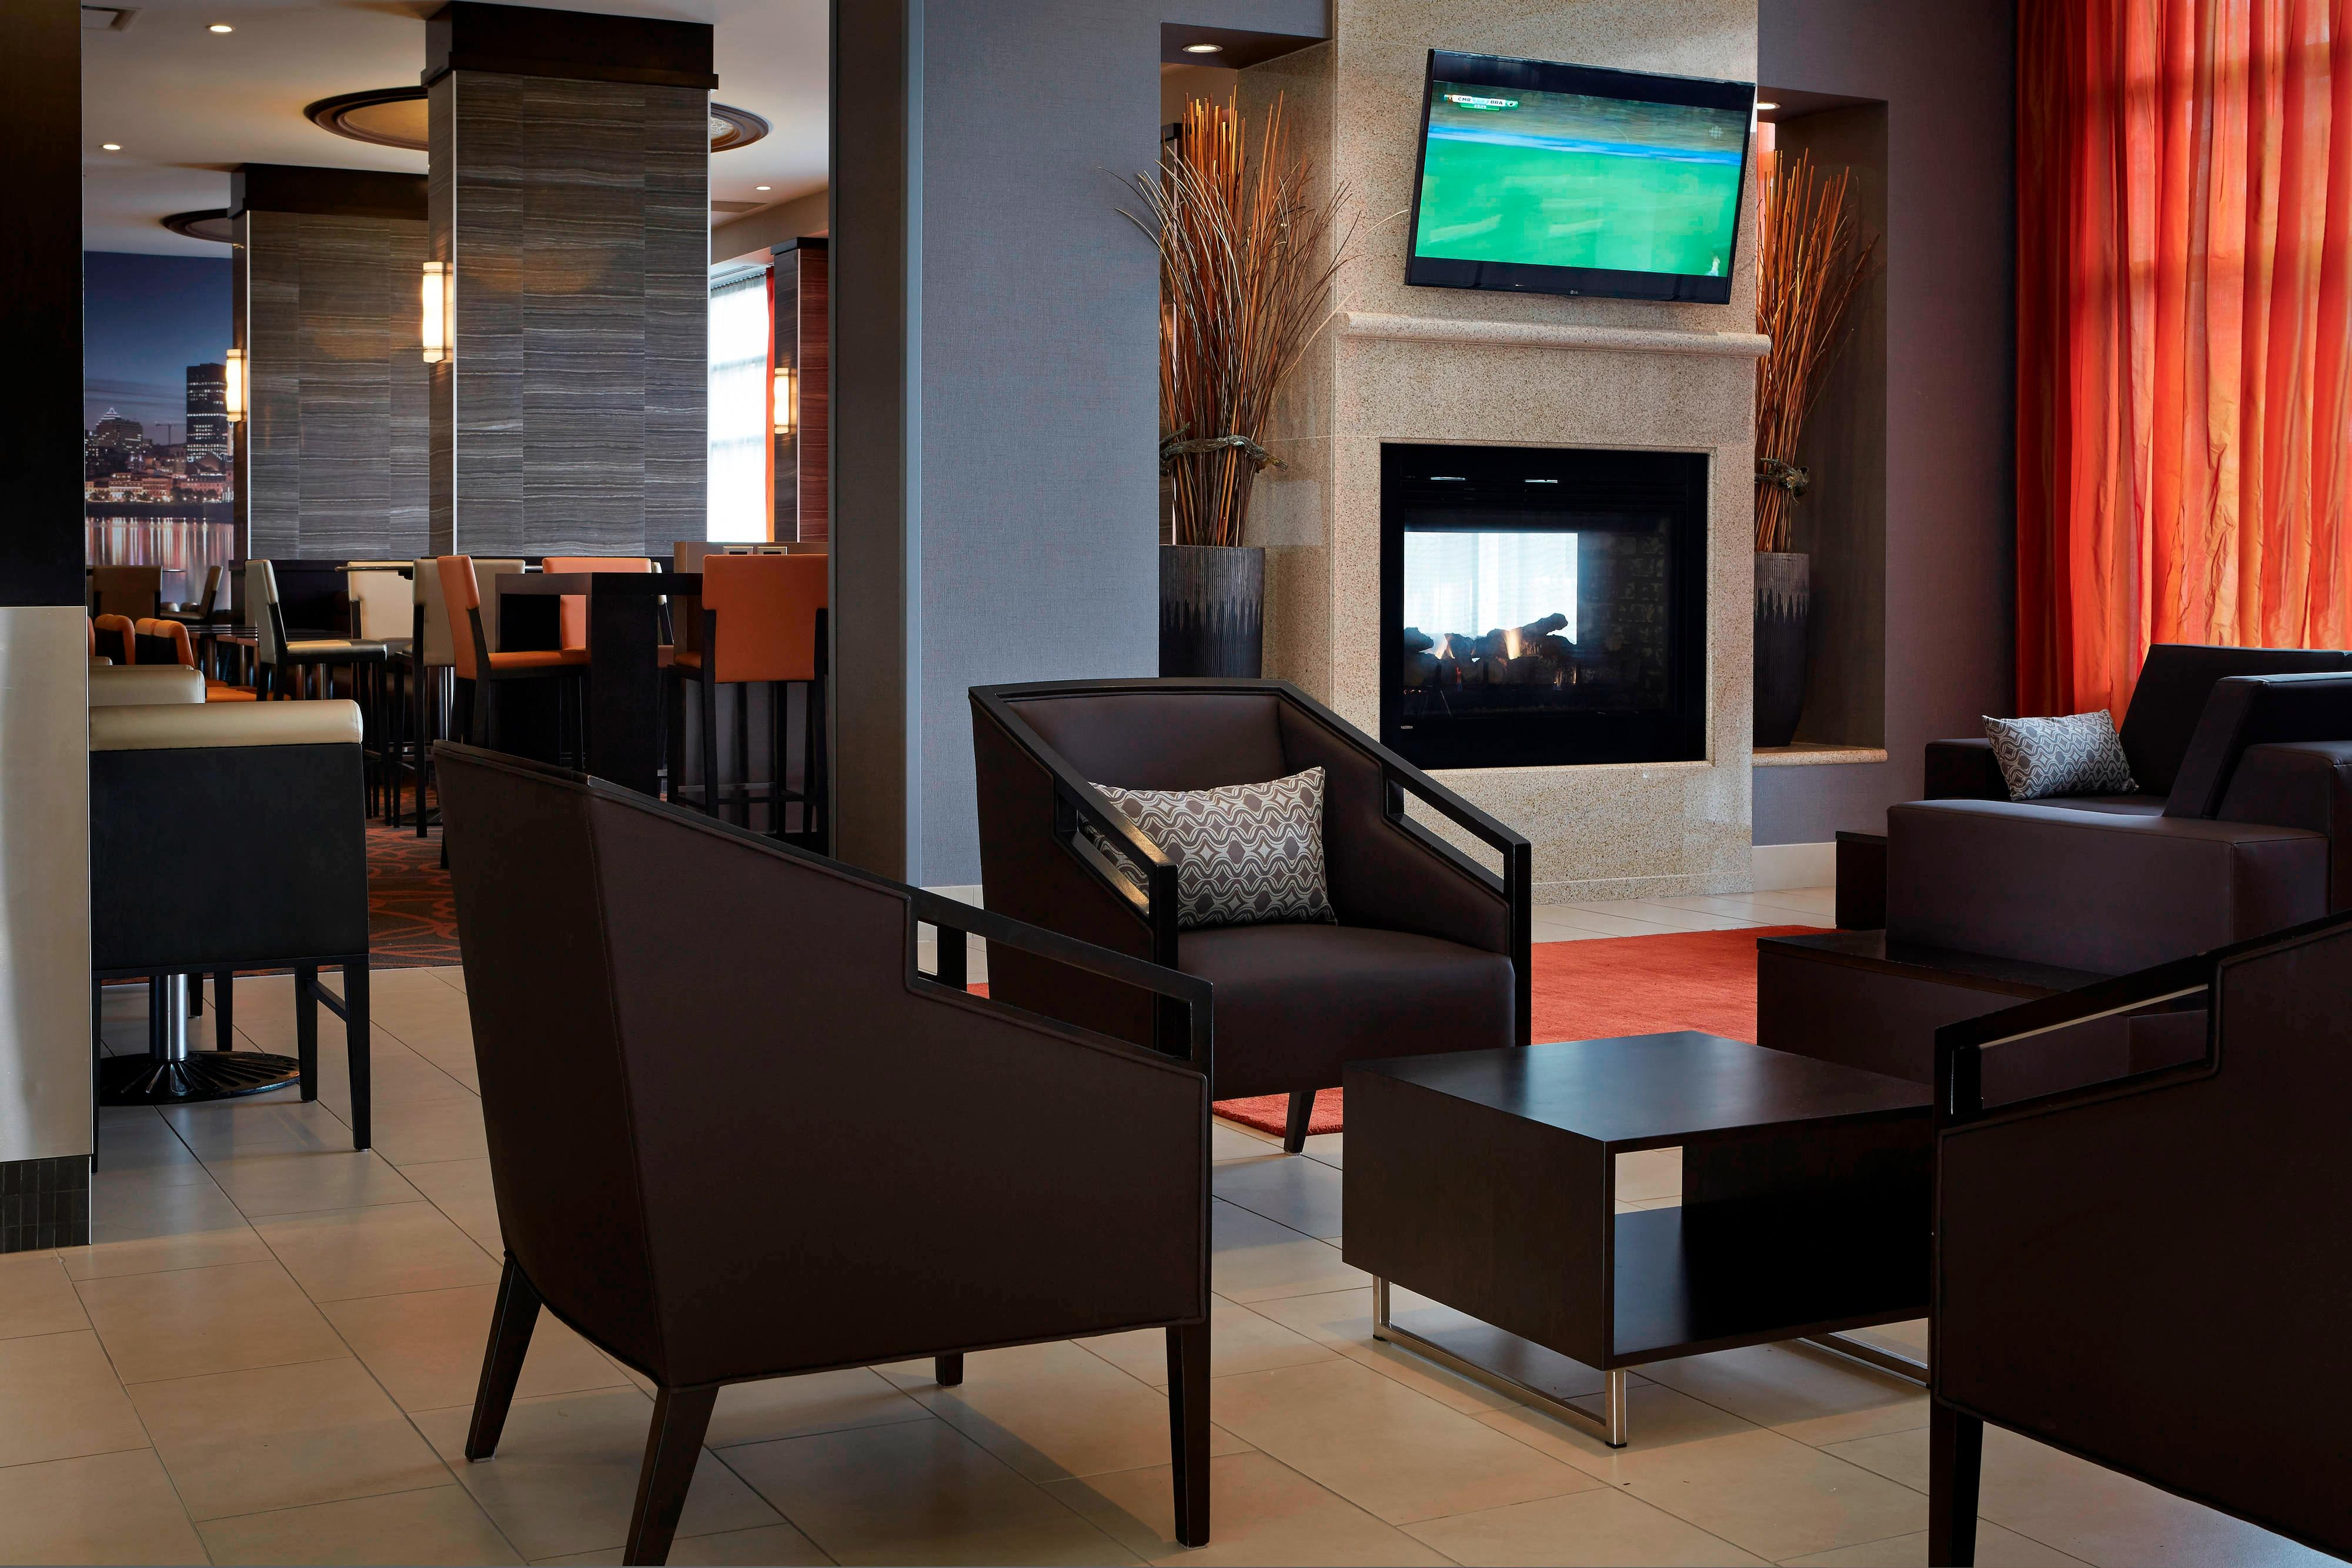 Montreal Airport hotel lobby